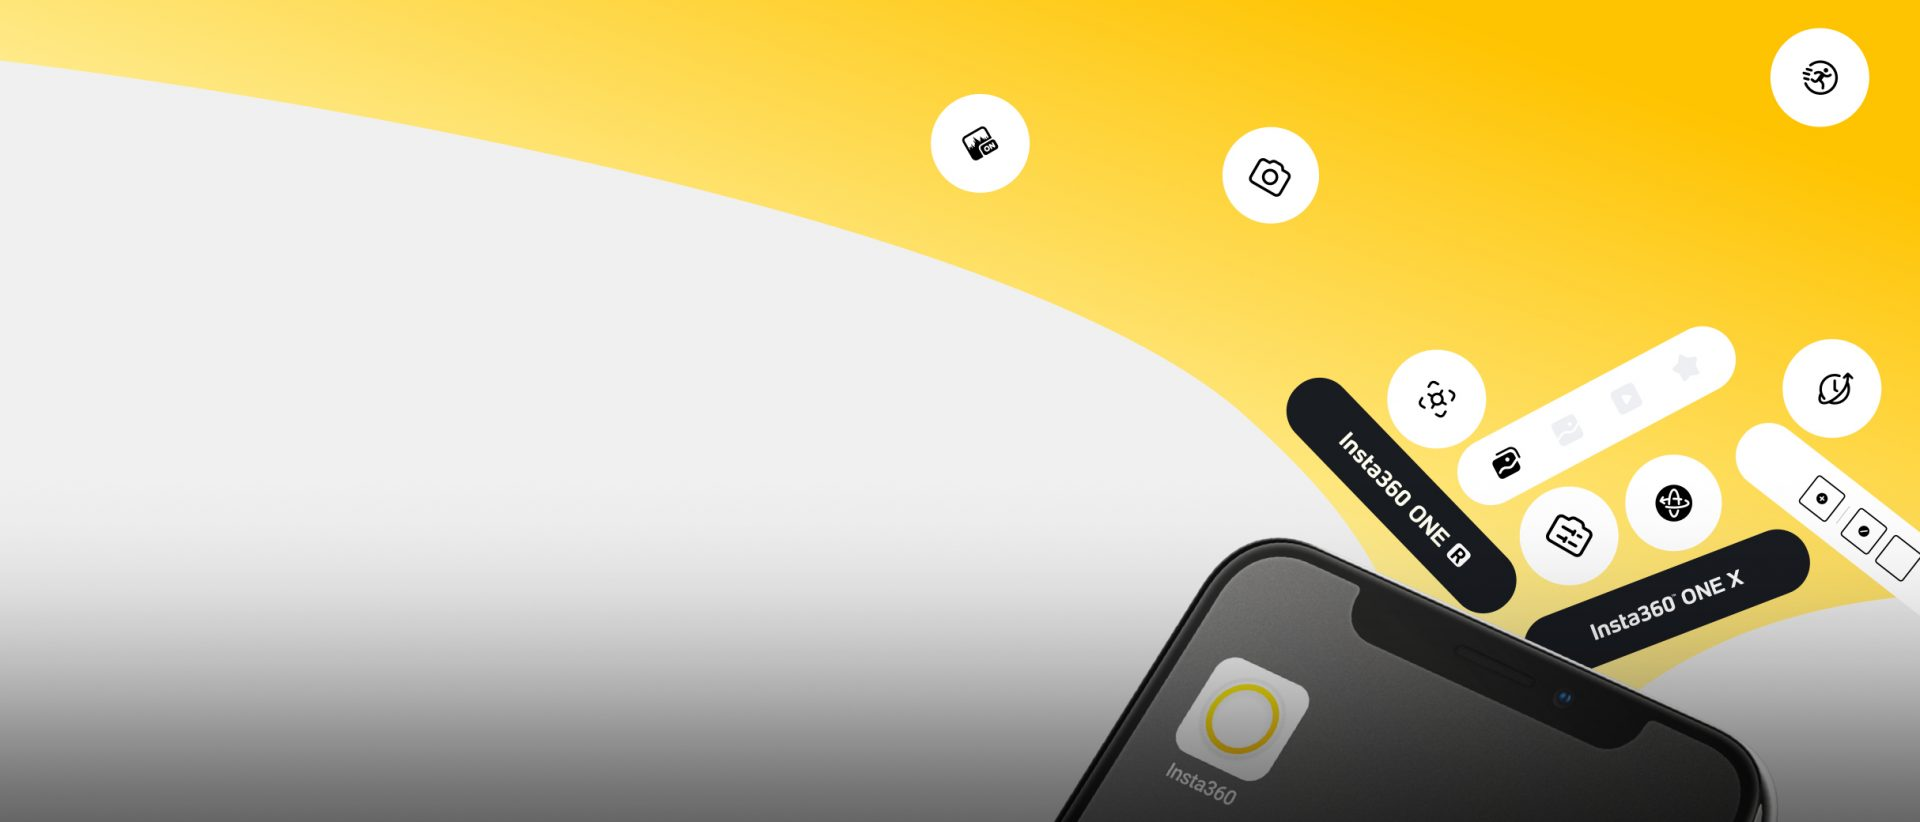 Introducing Insta360 App: Integrated App for ONE X and ONE R Users -  Insta360 Blog